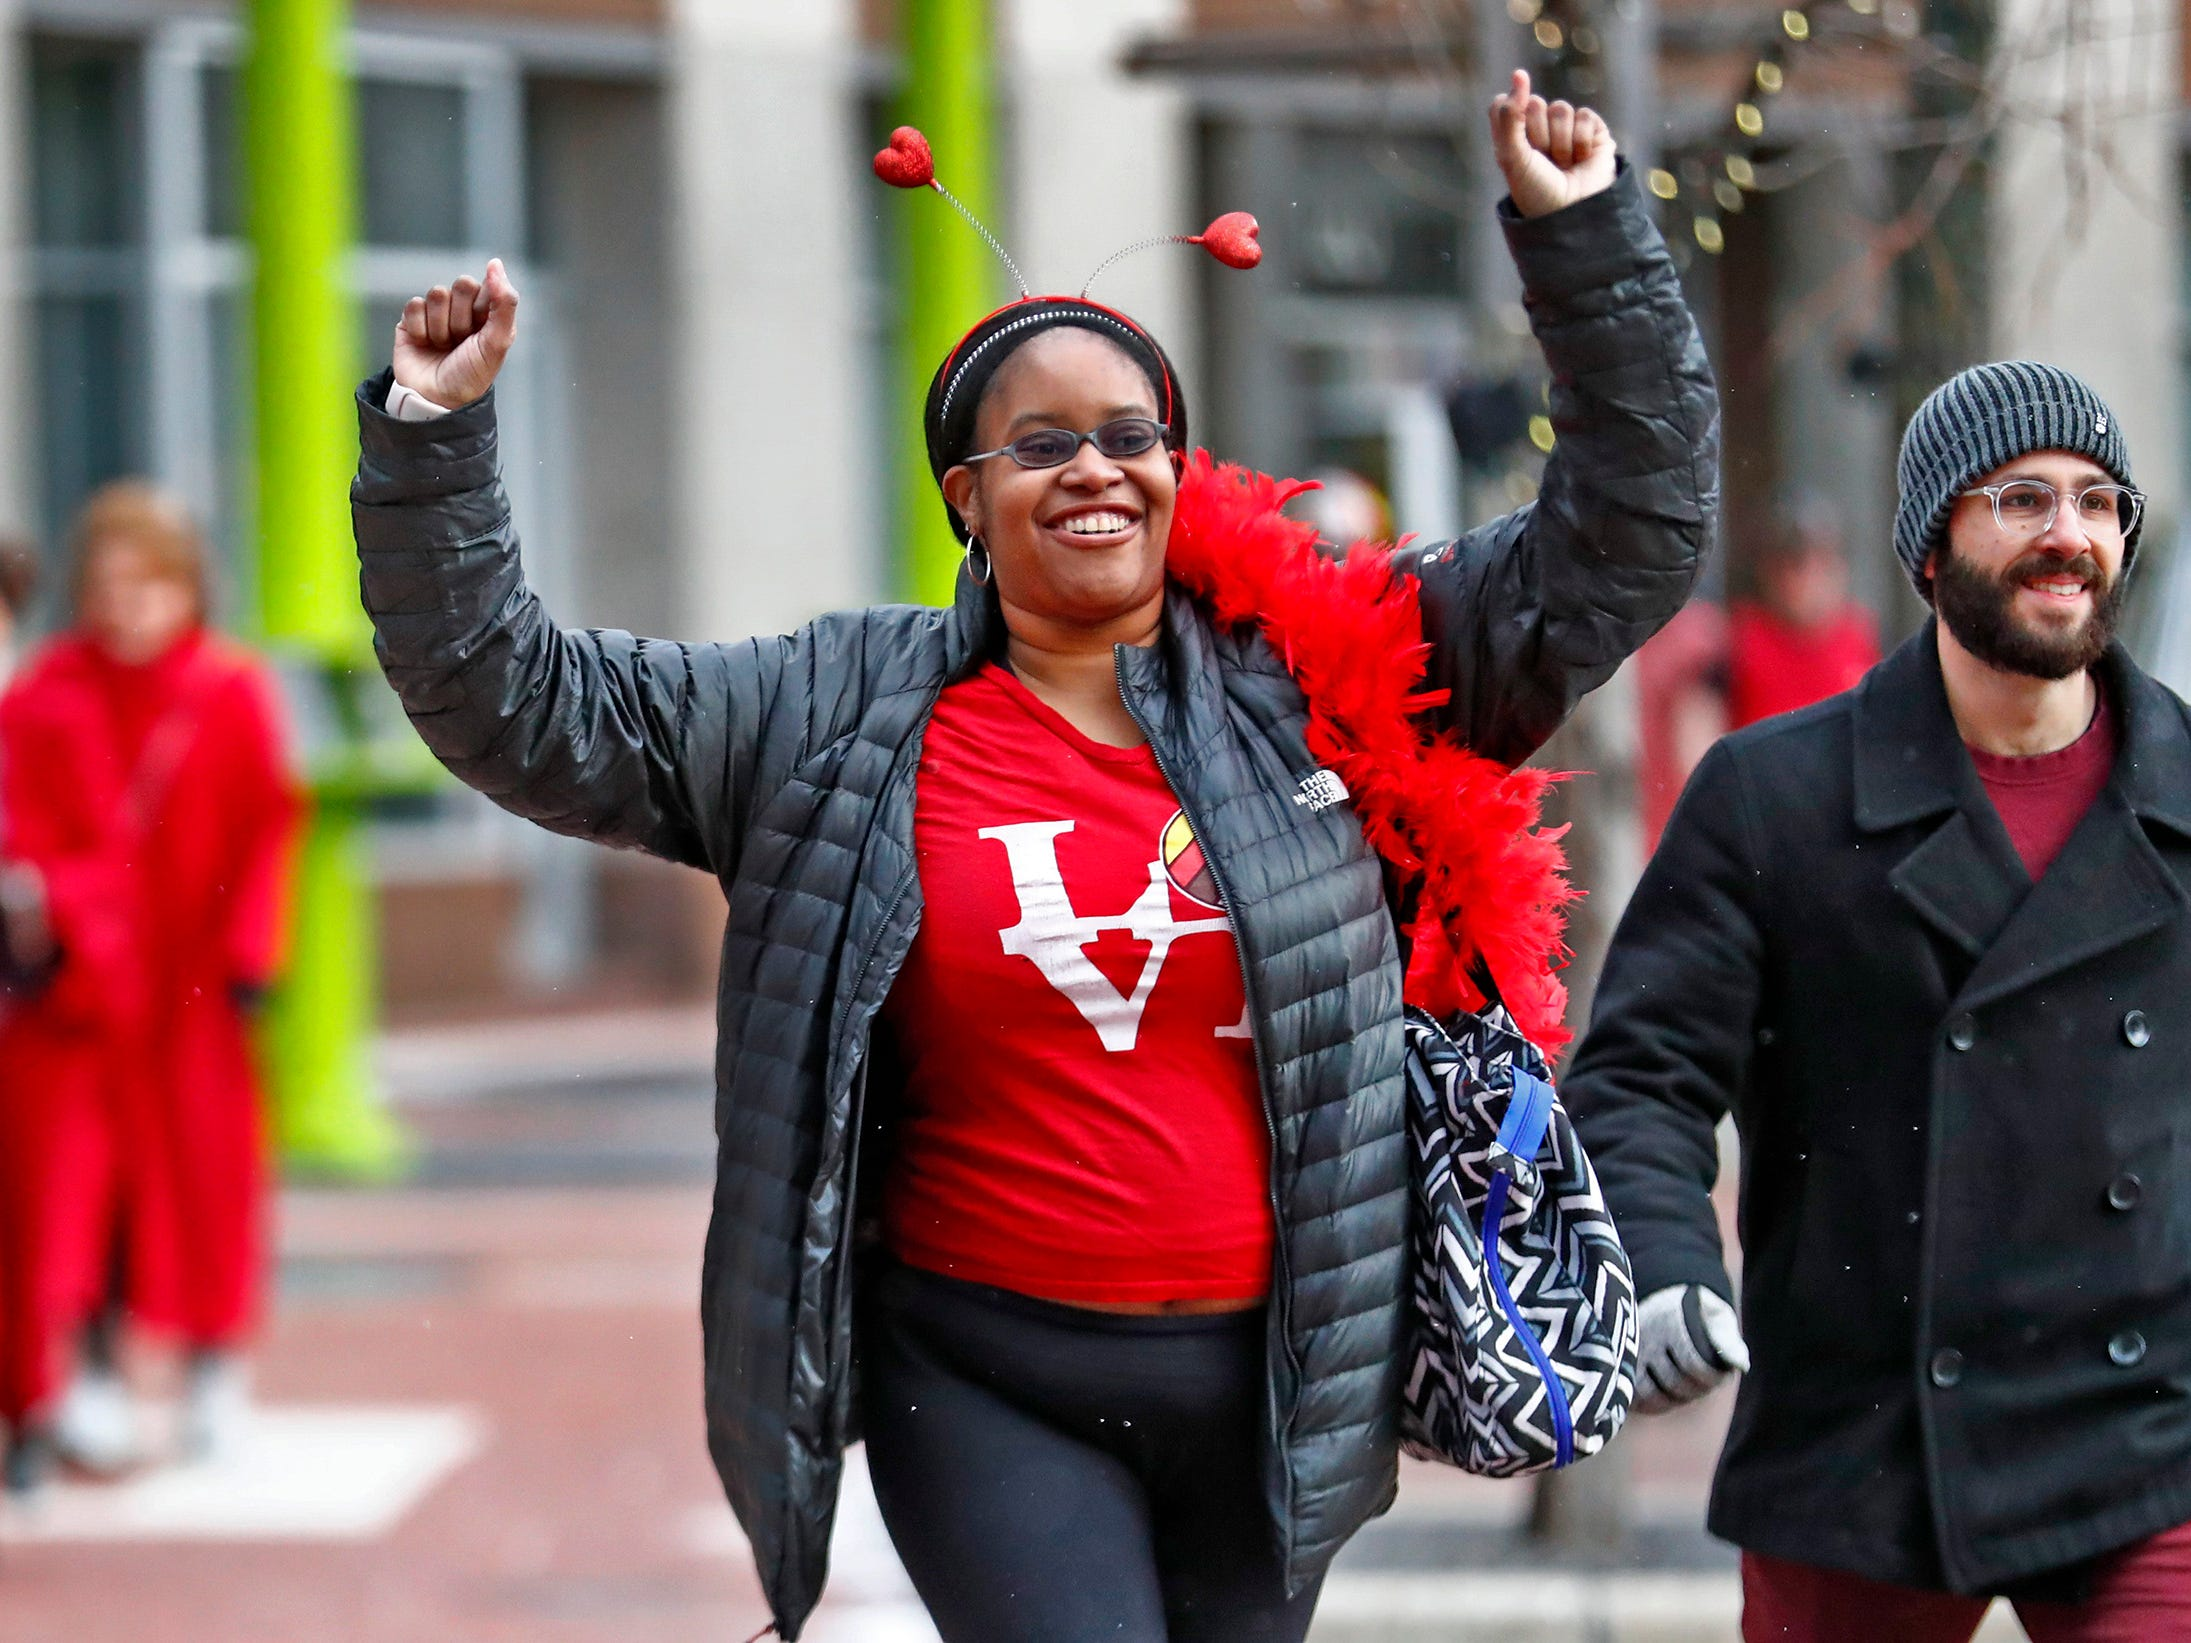 Renee Larson, center, and others have fun with a brisk run and dash around Monument Circle for the Red Dress Dash, Friday, Feb. 8, 2019.  The American Heart Association put on the seventh annual event to support women's heart health.  The event raises awareness for the American Heart Association's Go Red For Women movement.  Heart disease is the leading cause of death among women.